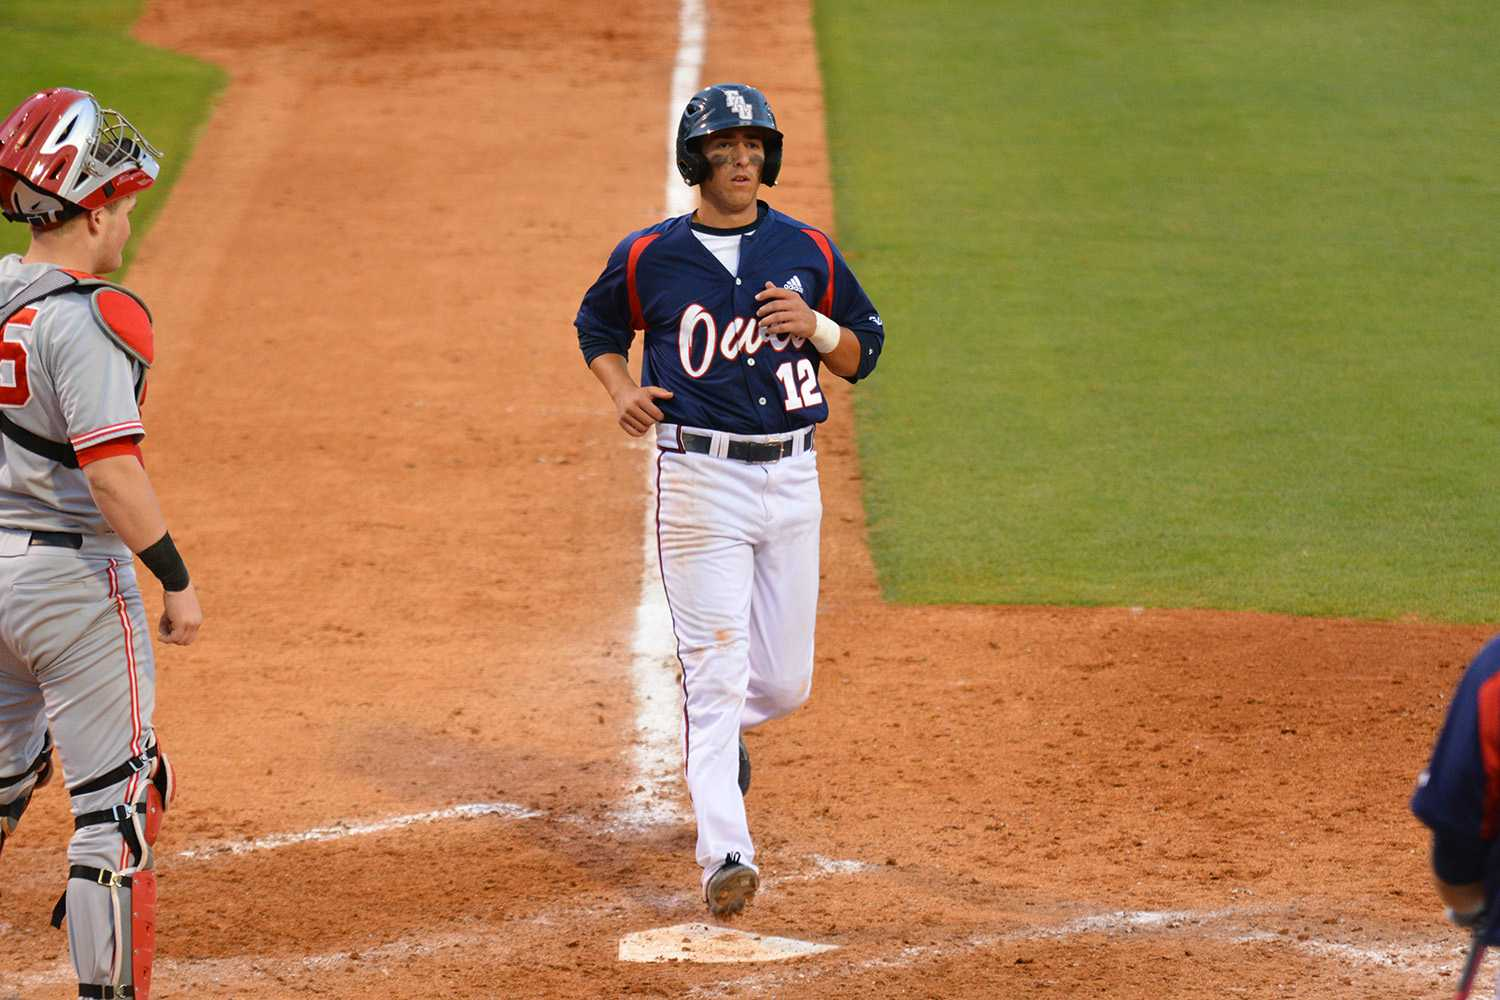 First baseman Brett Lashley runs into home to help push the Owls past the Buckeyes 7-0 during the Saturday matchup.